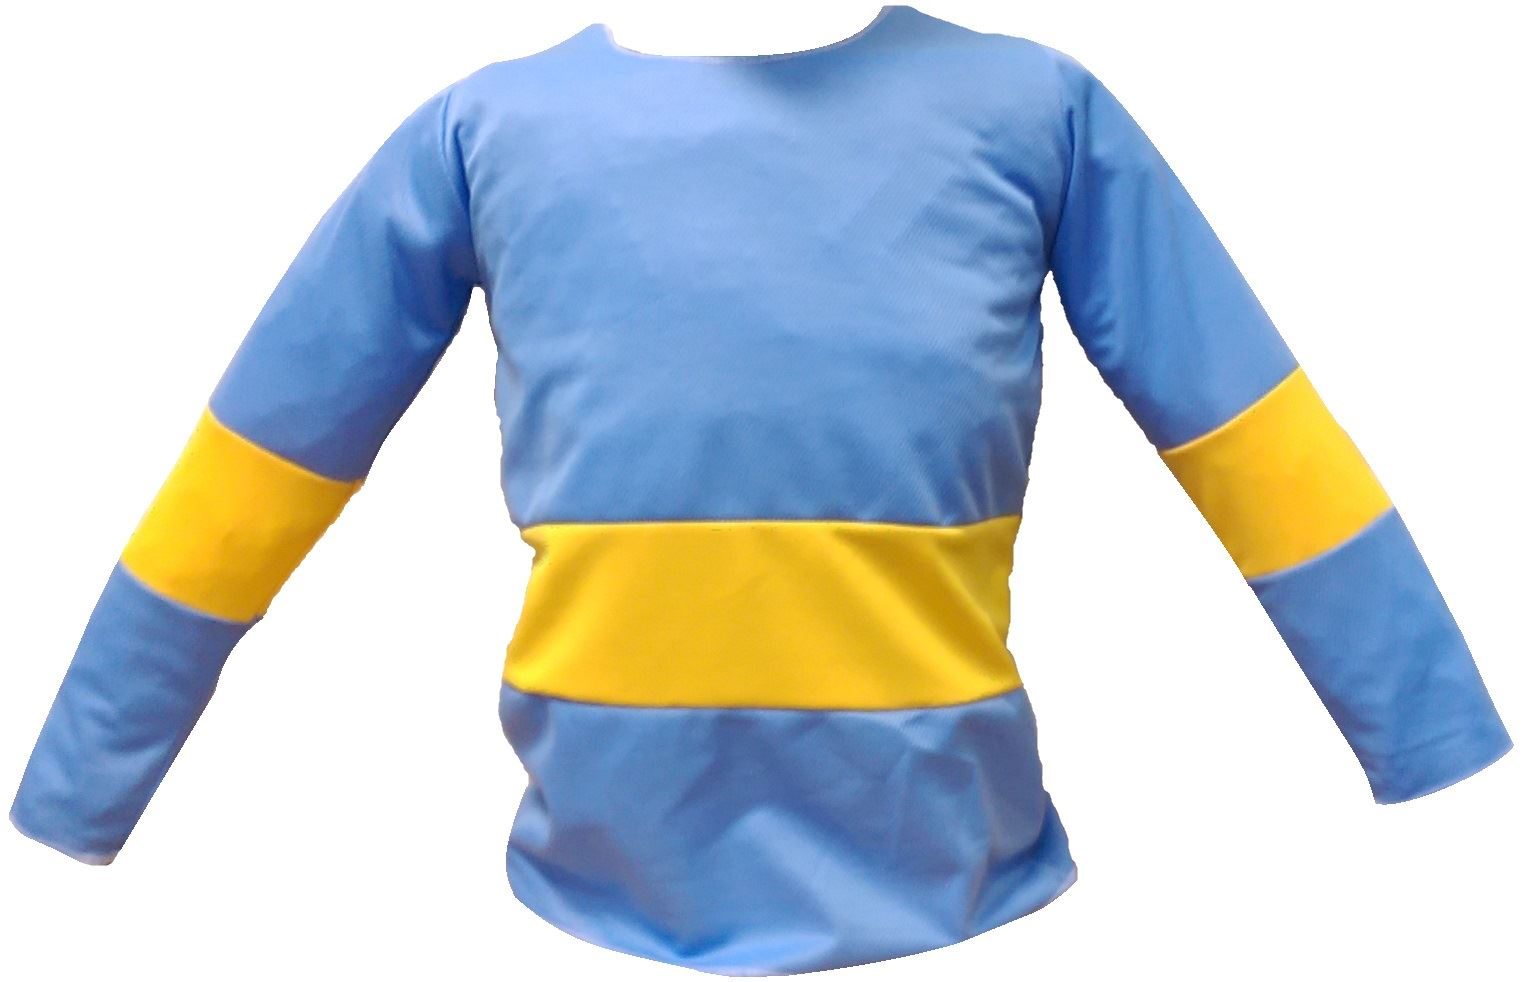 Childrens Horrid Henry Popular Fancy Dress Top Book Week Costume eBay